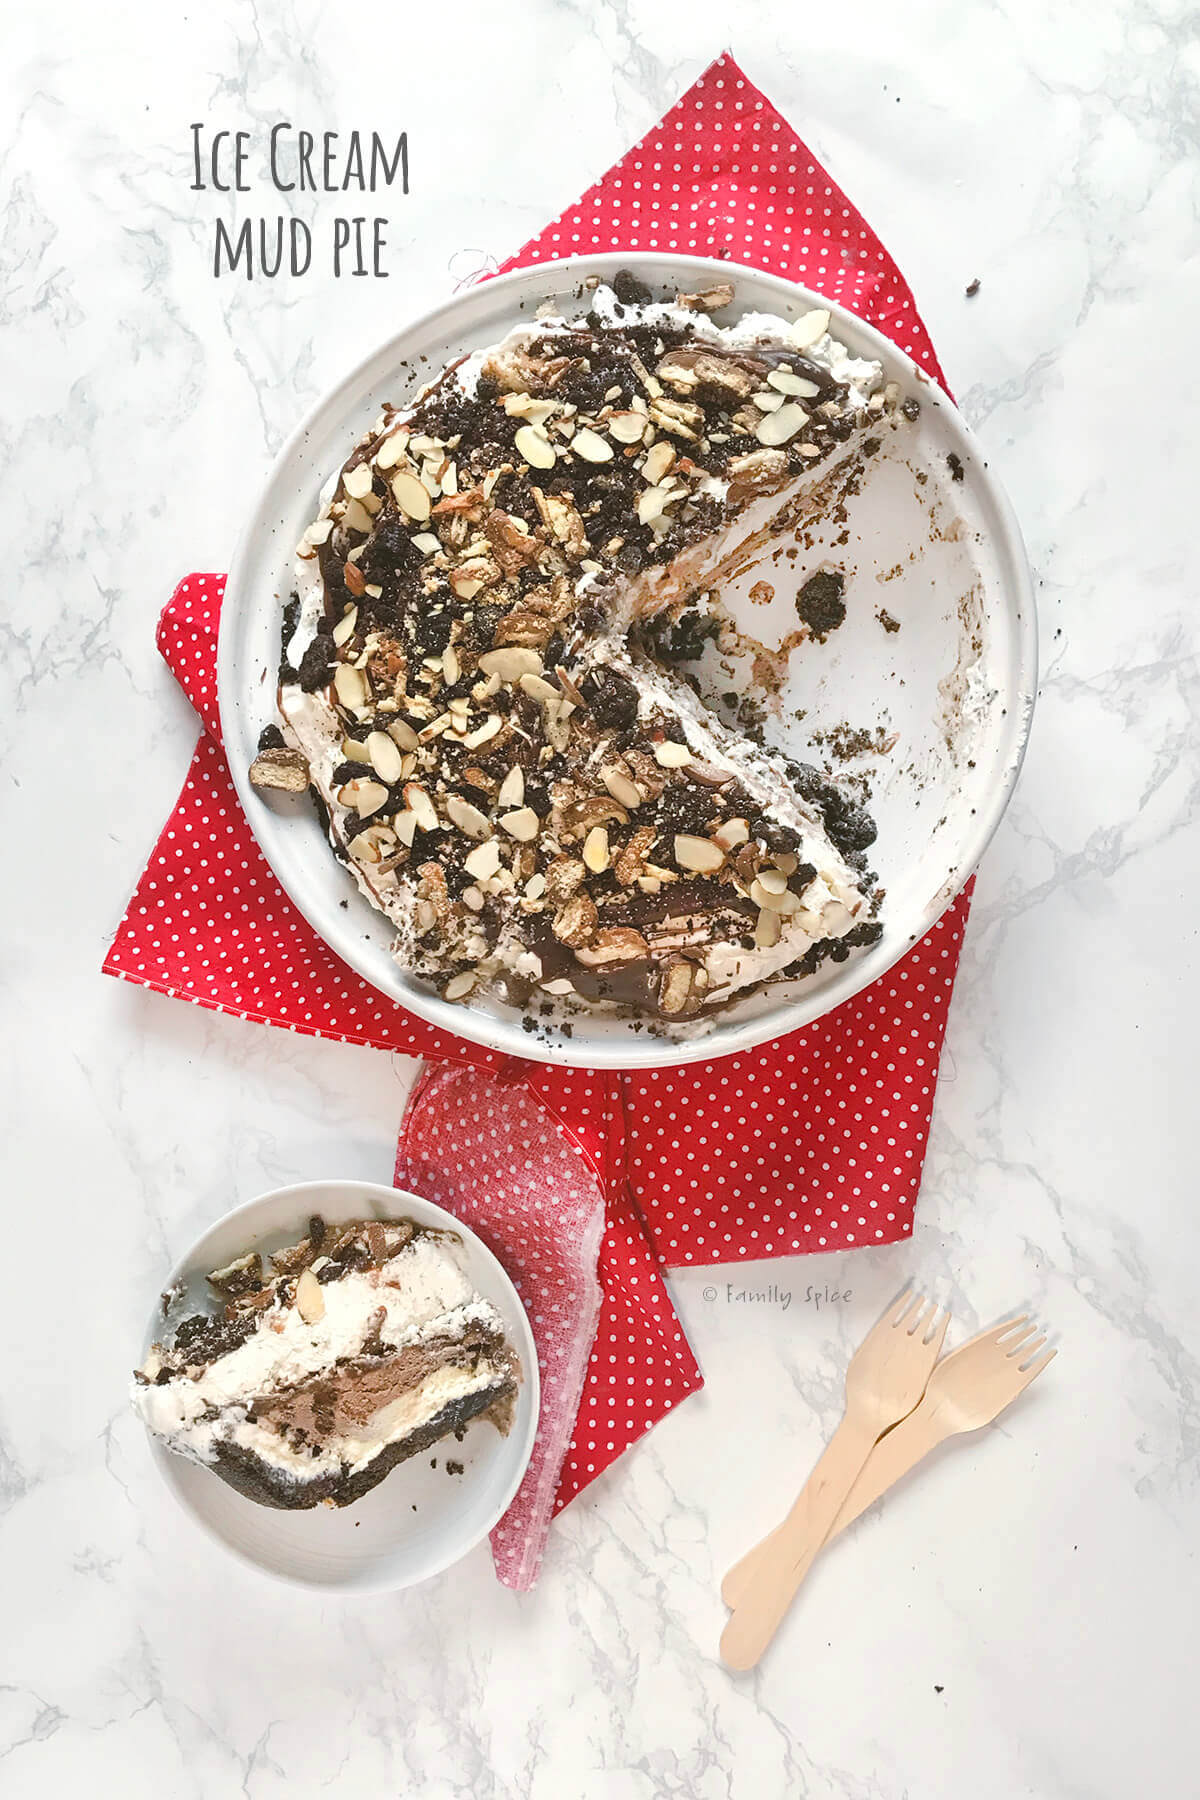 Overhead view of final ice cream mud pie with a slice cut out and on a small white plate by FamilySpice.com